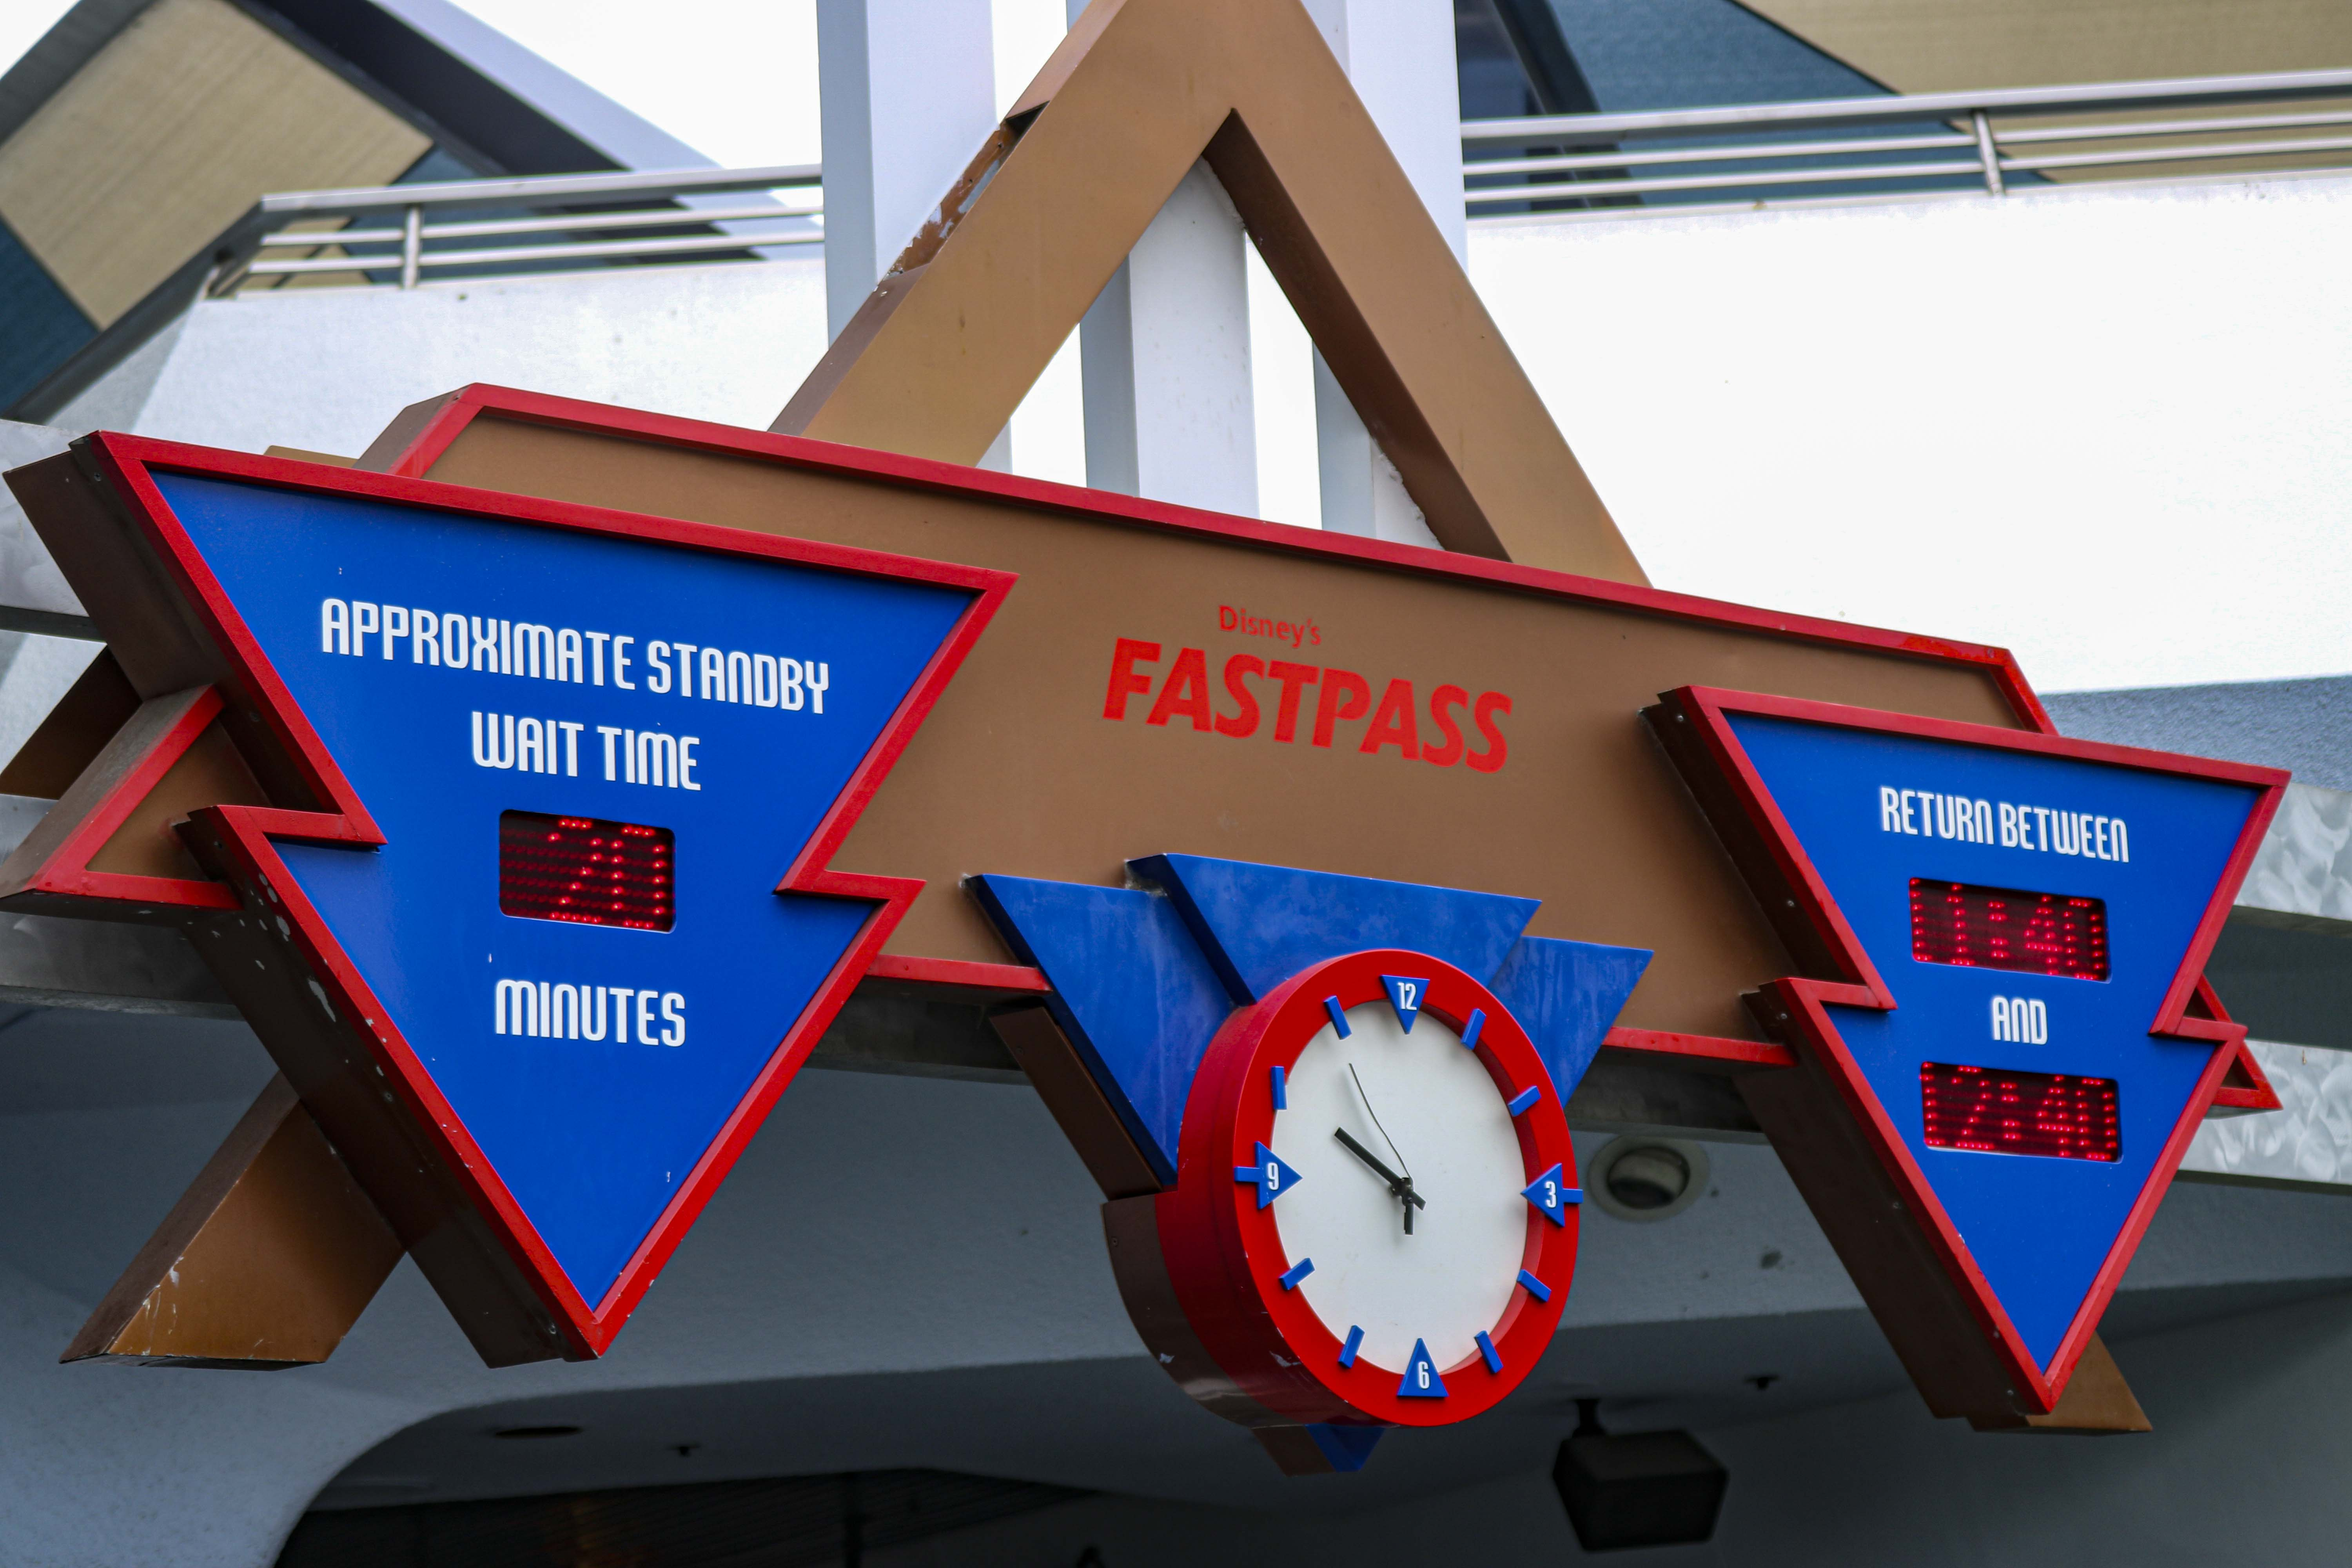 Wait times resort wide were lower than expected. prompting those to ask the question: What comes next?